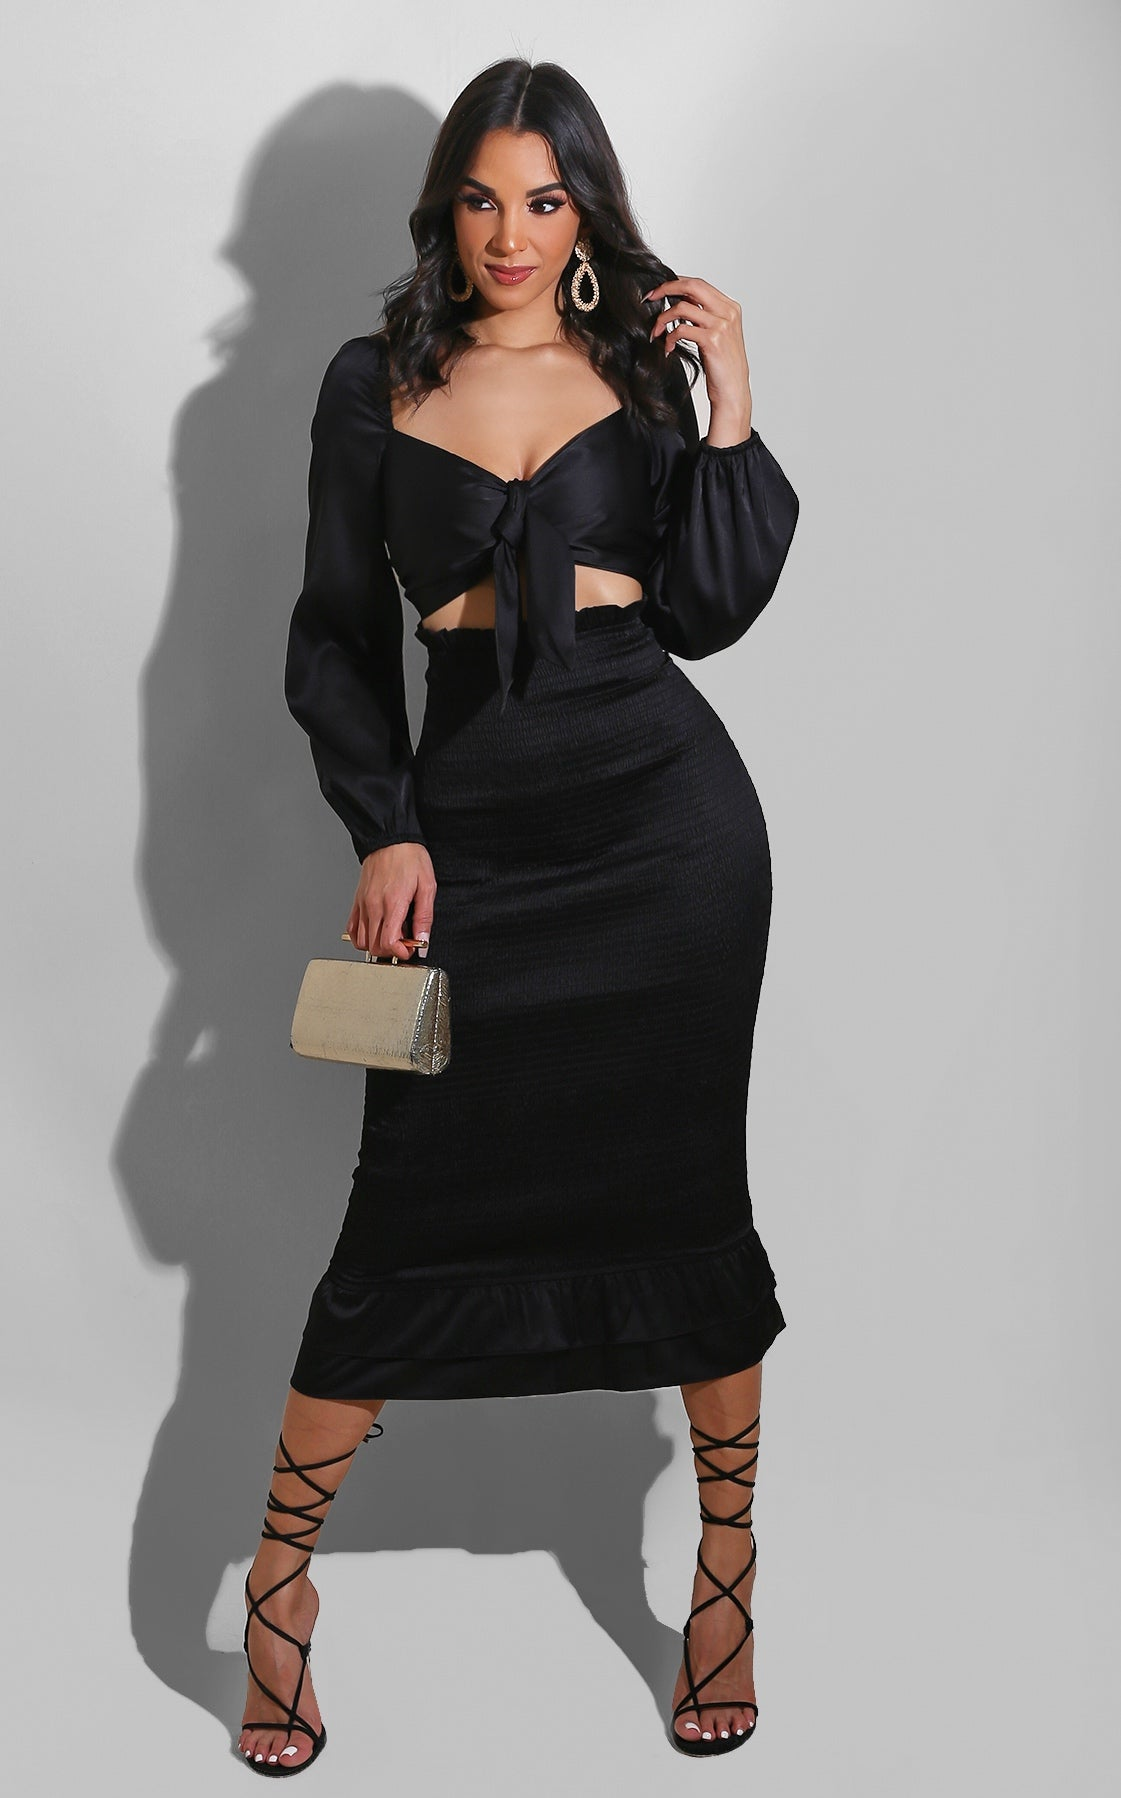 The Lady Is In Midi Black